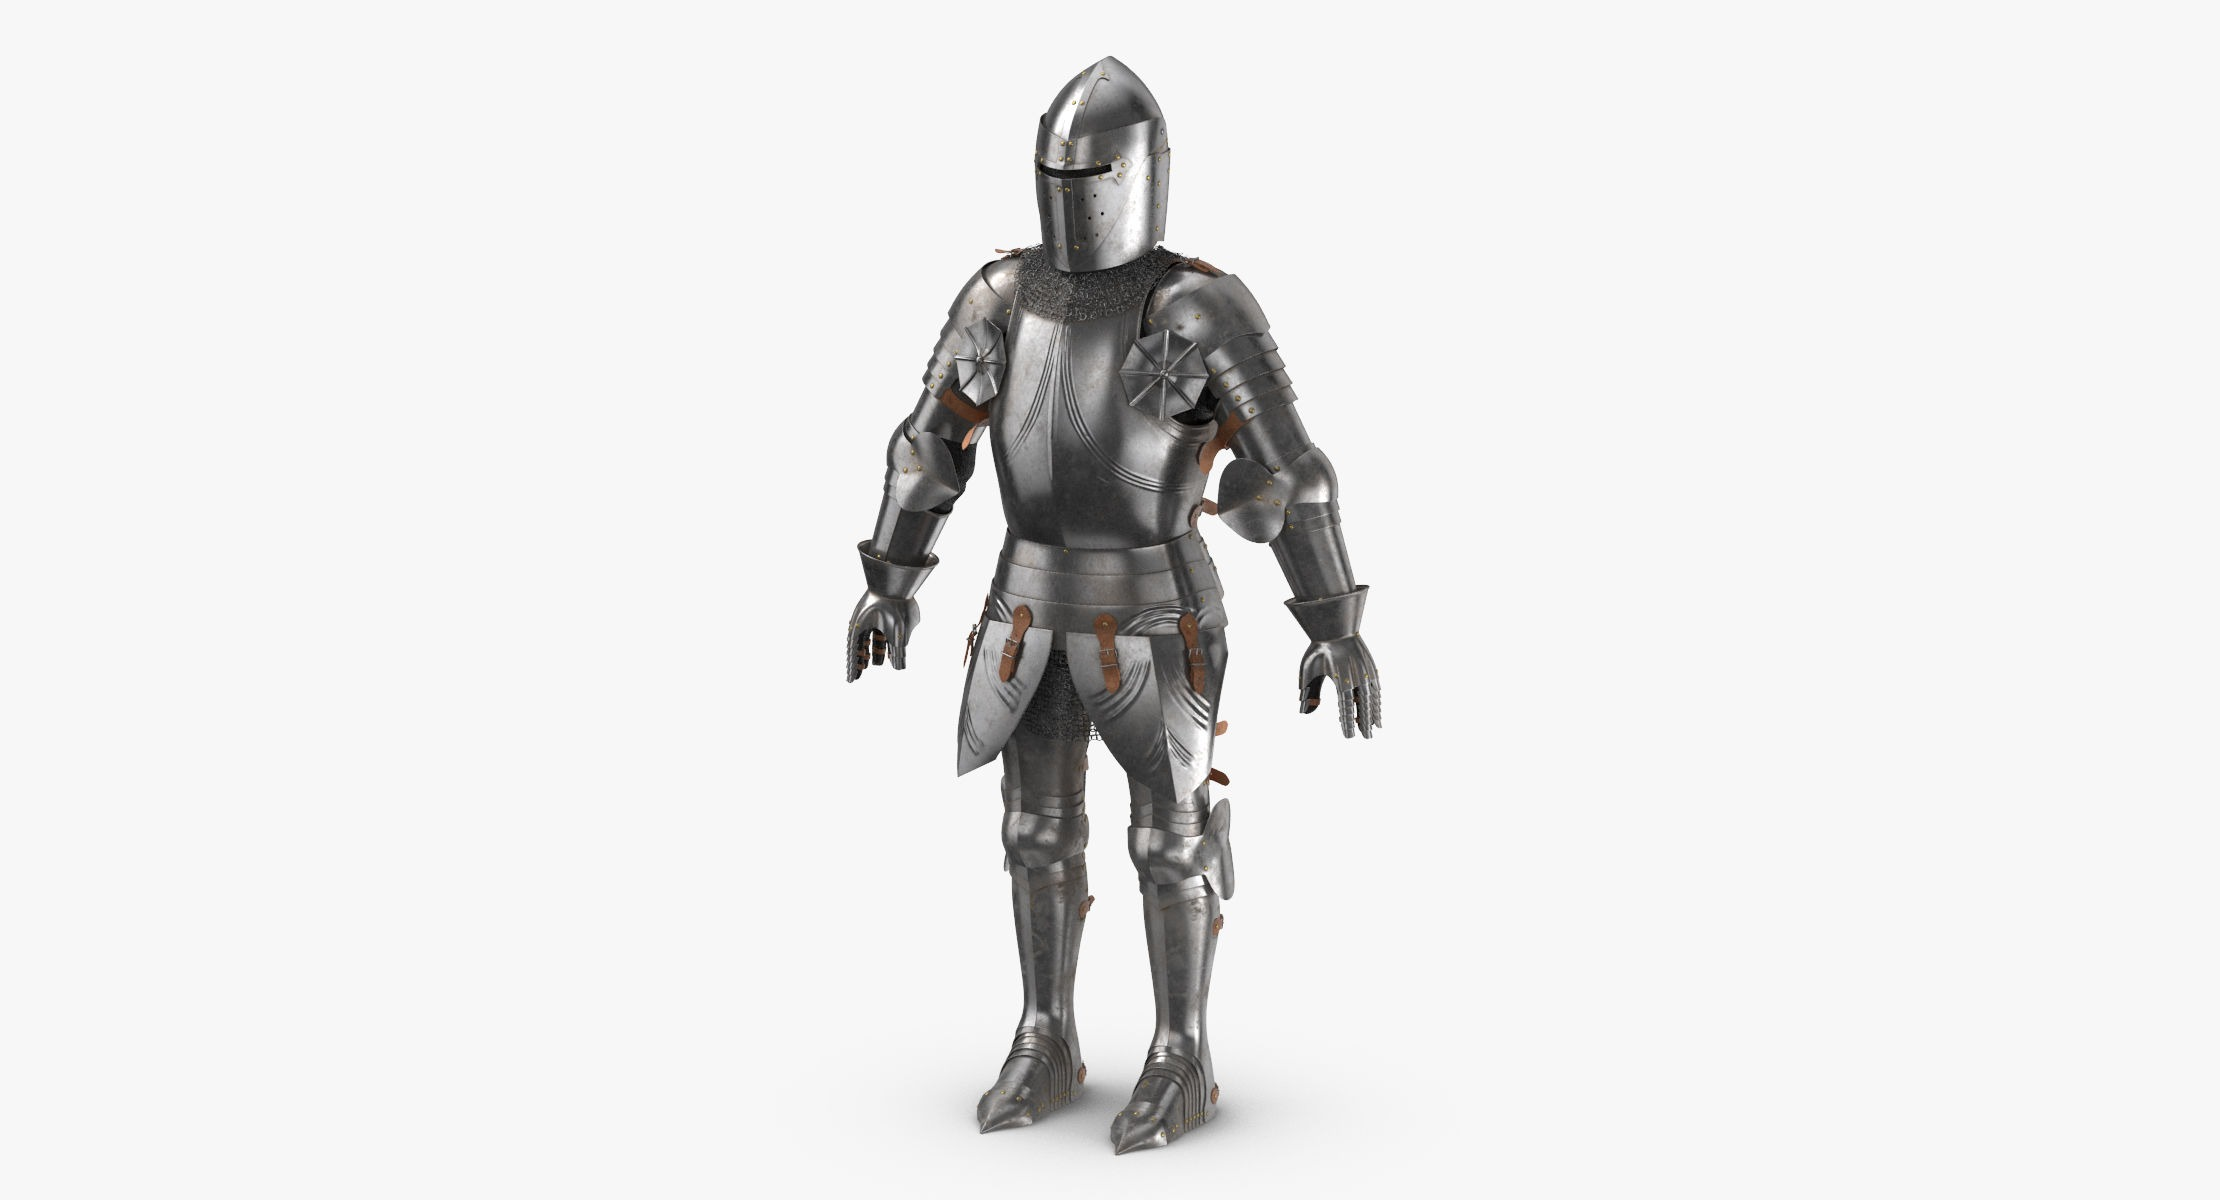 Medieval Knight Armor - Rigged - reel 1